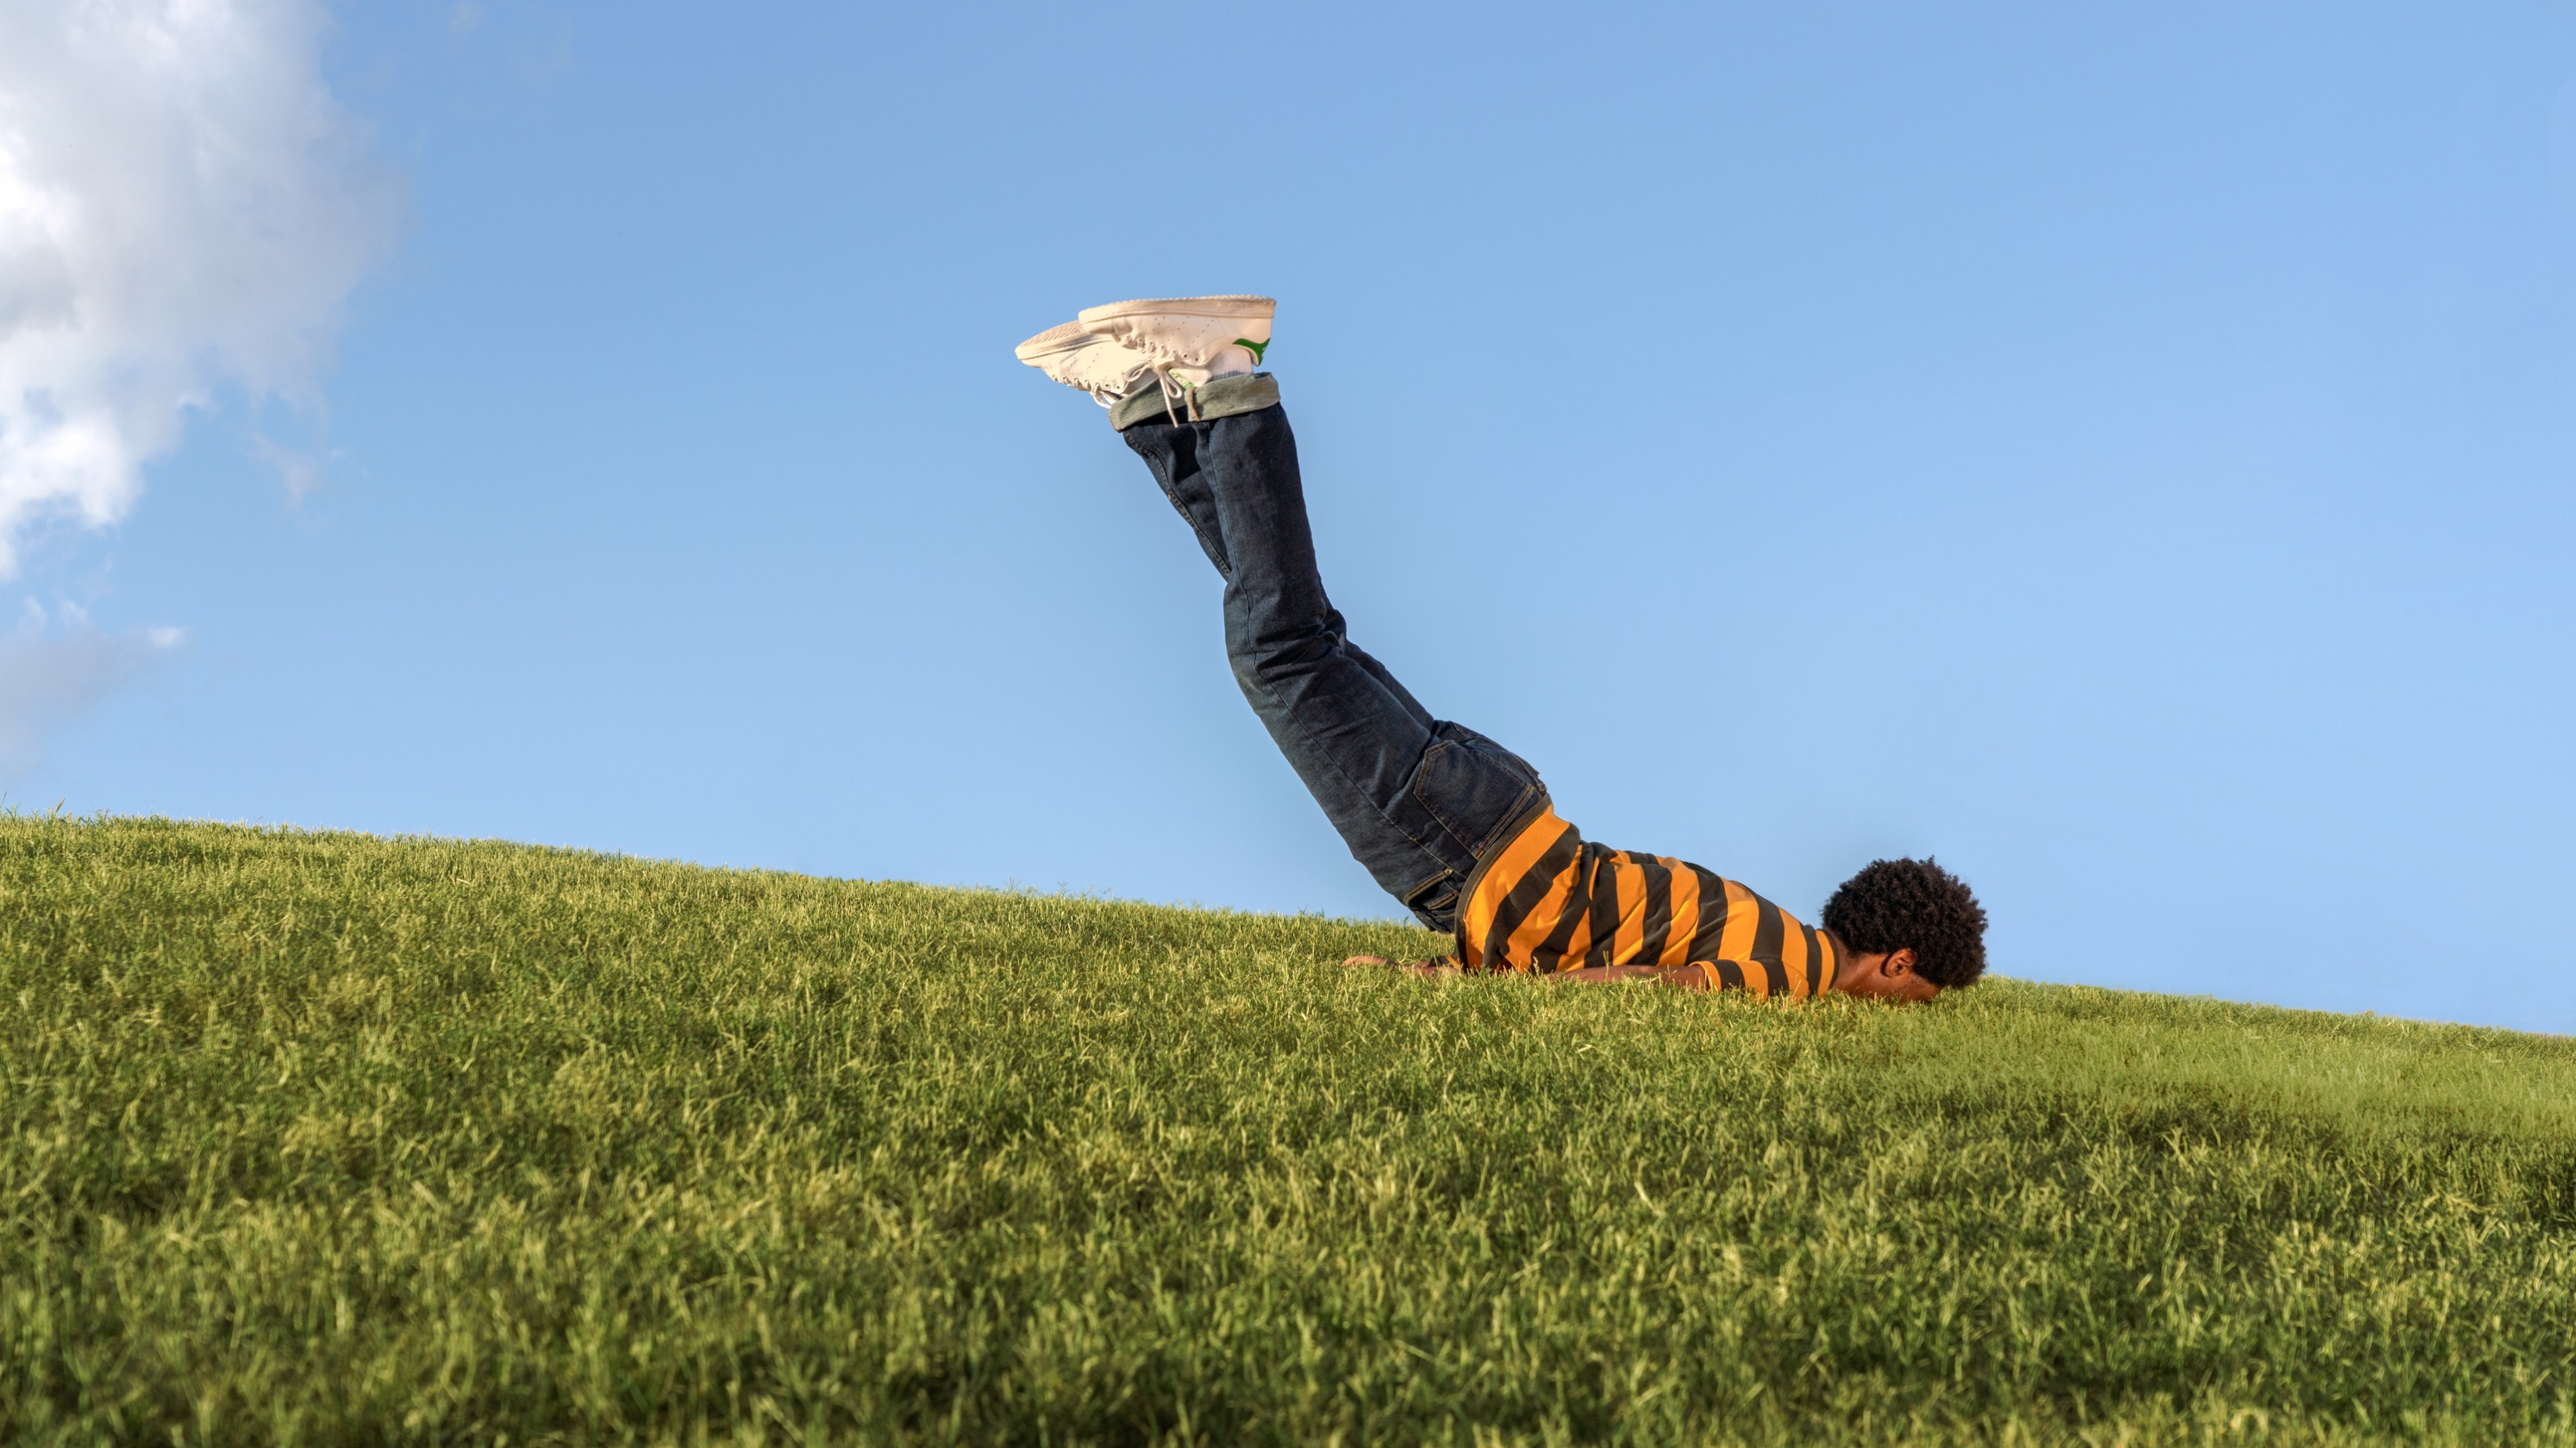 Man facedown on a grassy field in springtime.